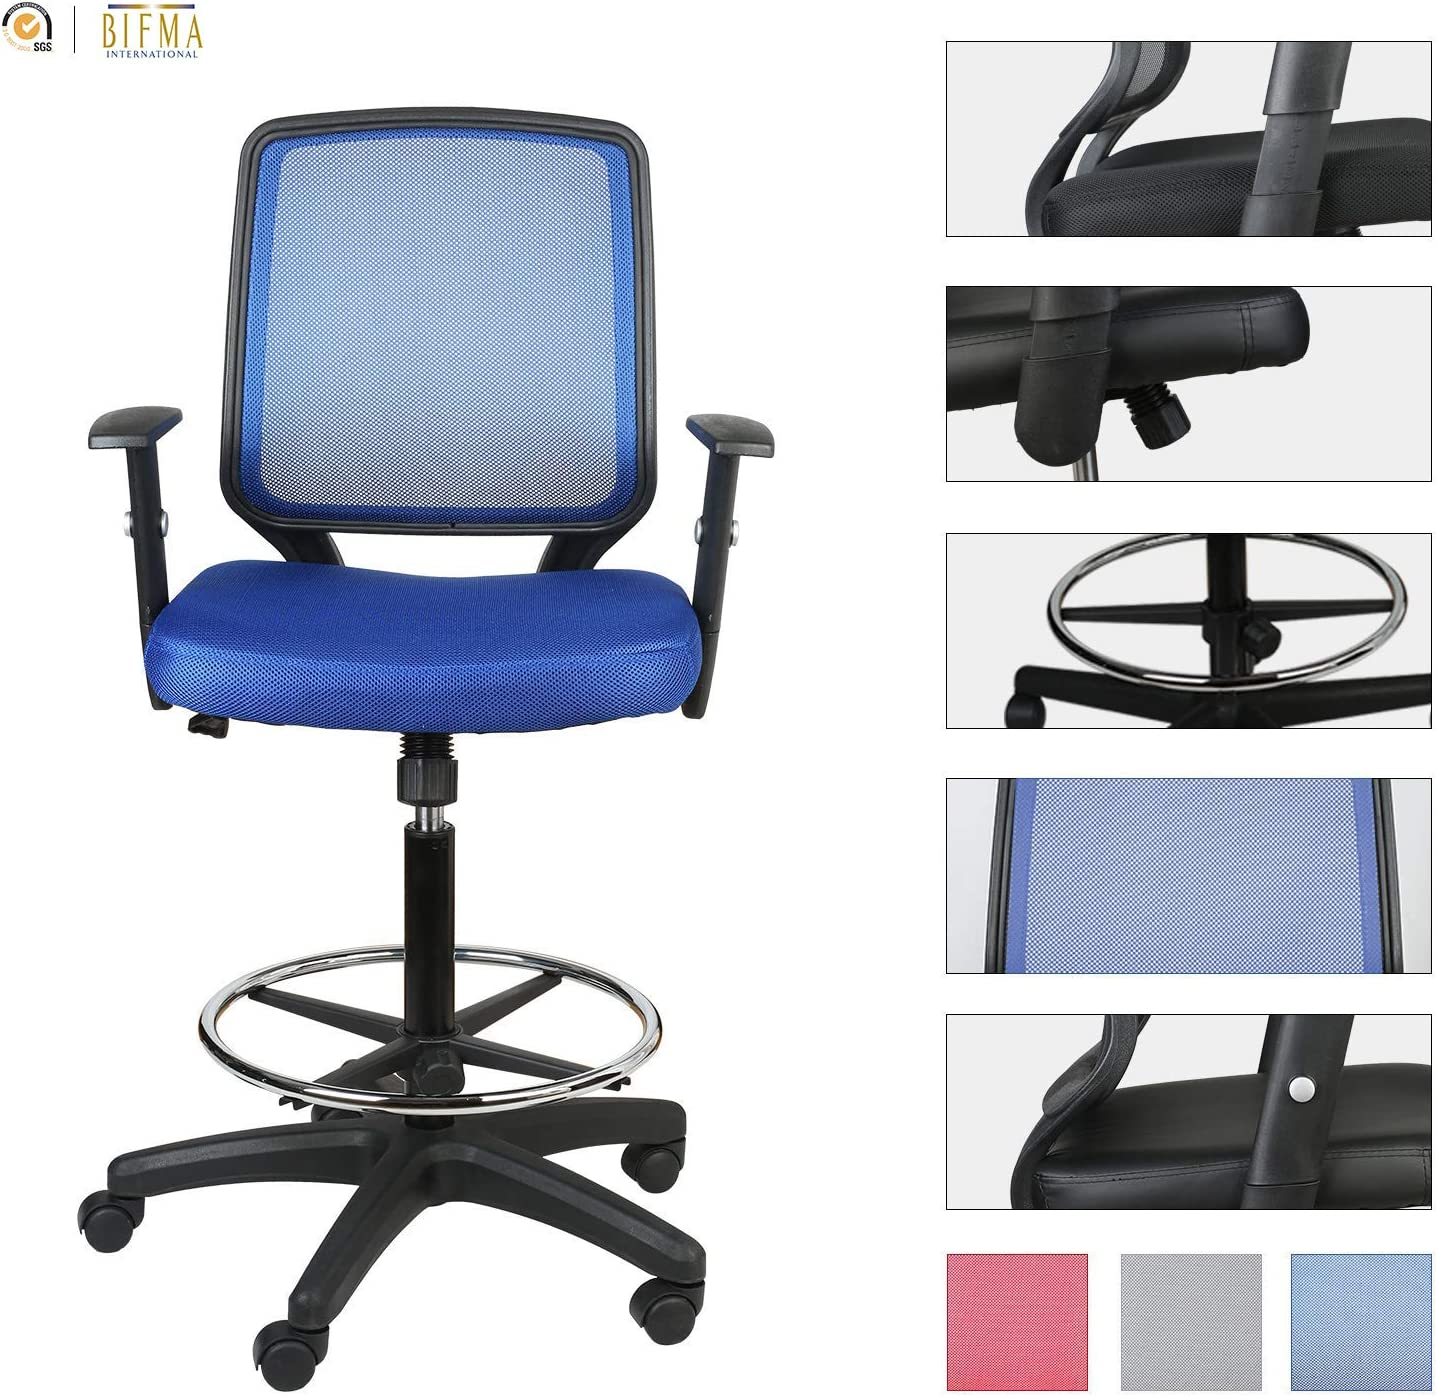 LUCKWIND Office Drafting Chair Mesh – Adjustable Arm Task Ergonomic Lumbar Support Mid Mesh Back Computer Desk Chair Swivel Chair with Adjustable Chrome Foot Rest Big and Tall Tilt SGS-BIFMA Blue